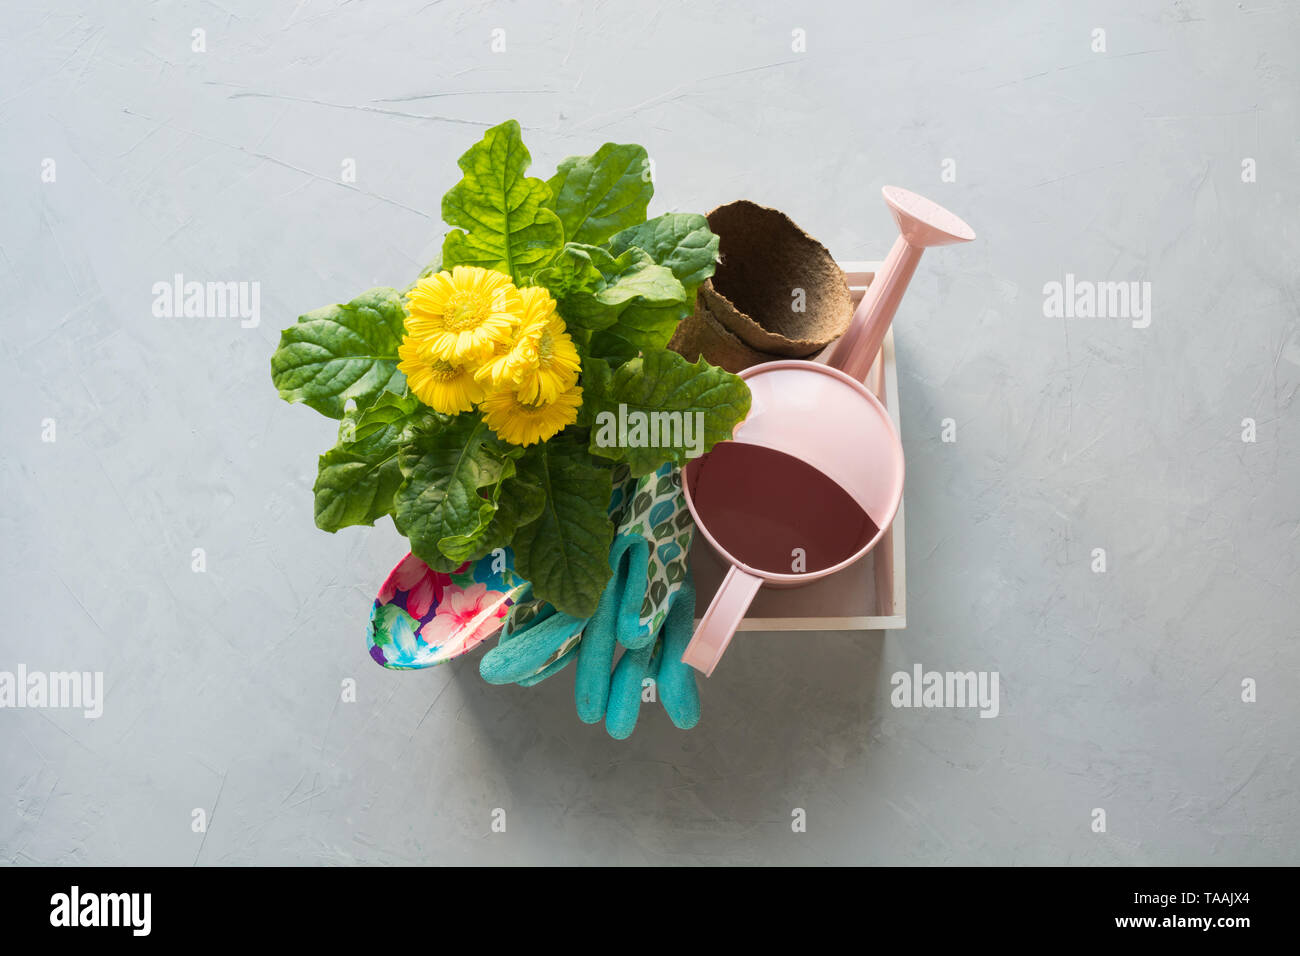 Gardening background with yellow gerbera, tolls and garden flowers plant in box on gray concrete background. Top view. - Stock Image